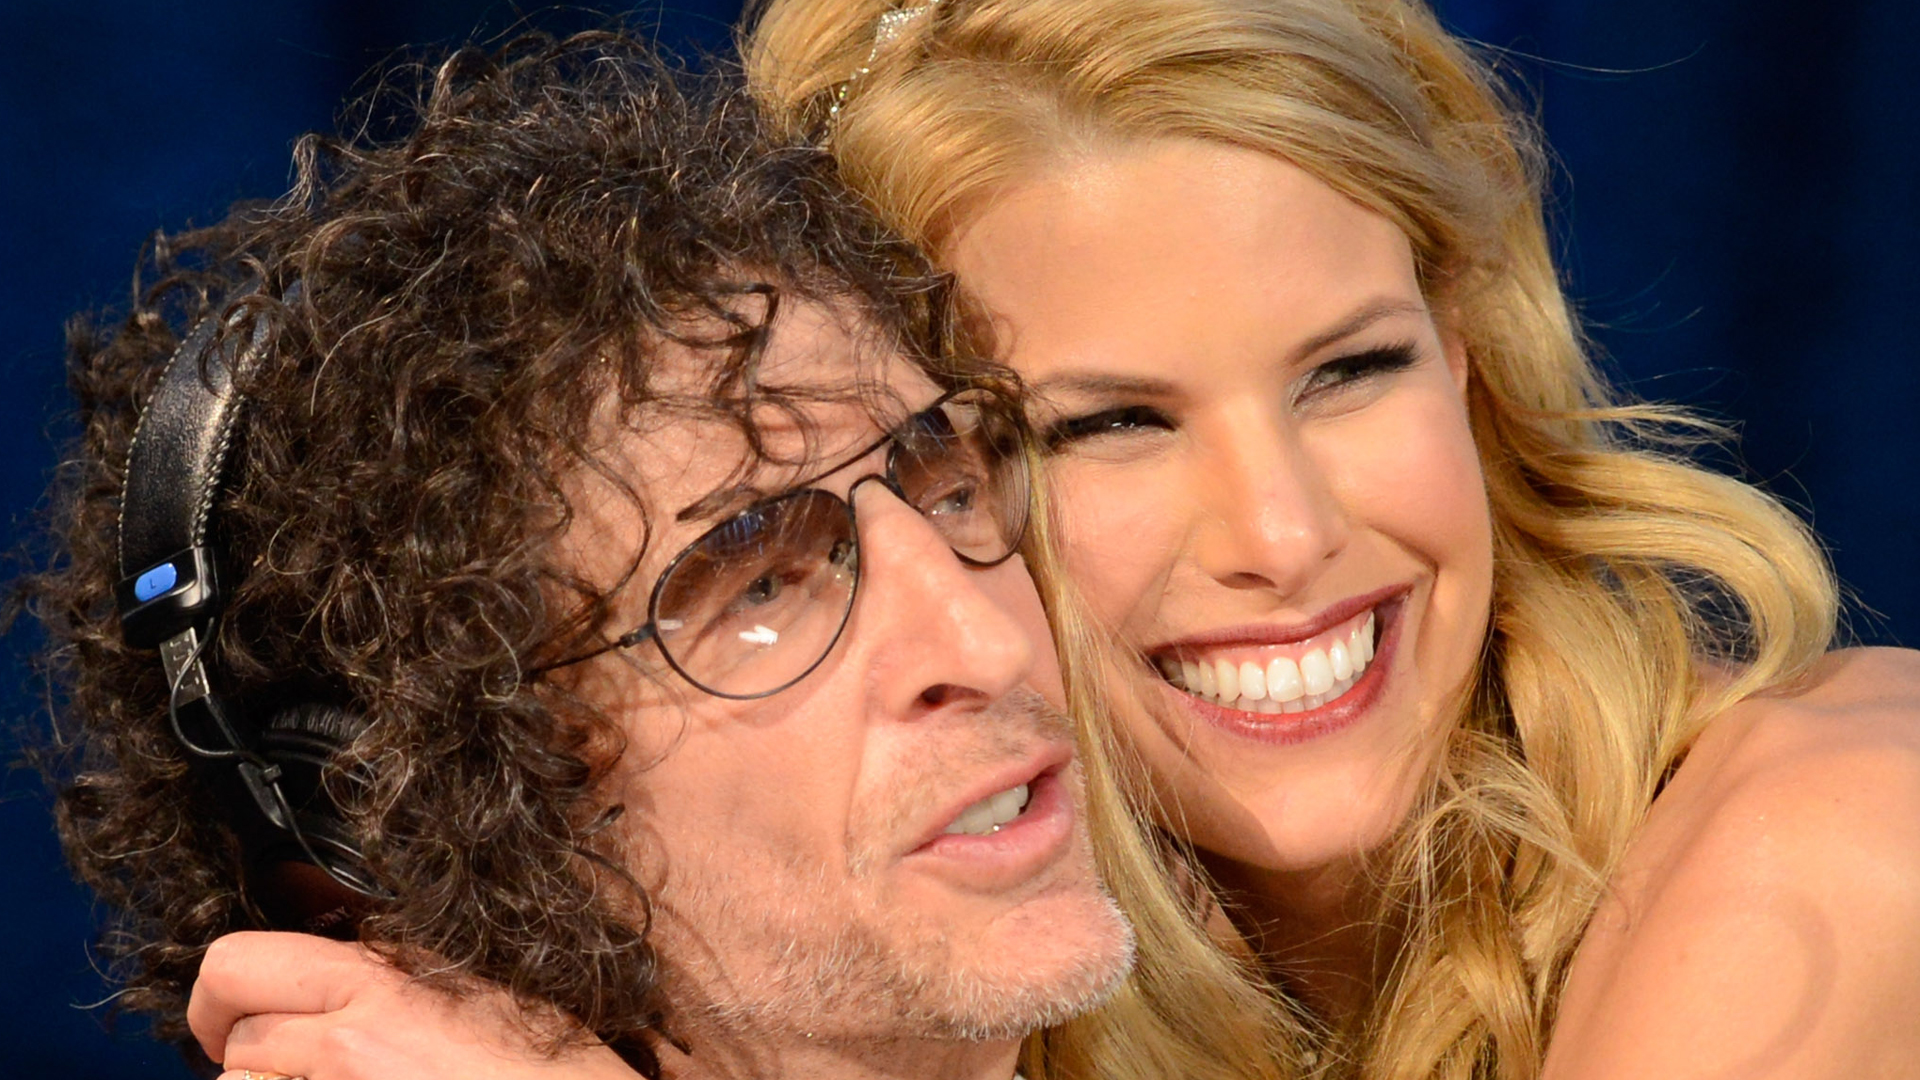 Strange things about Howard Stern's marriage